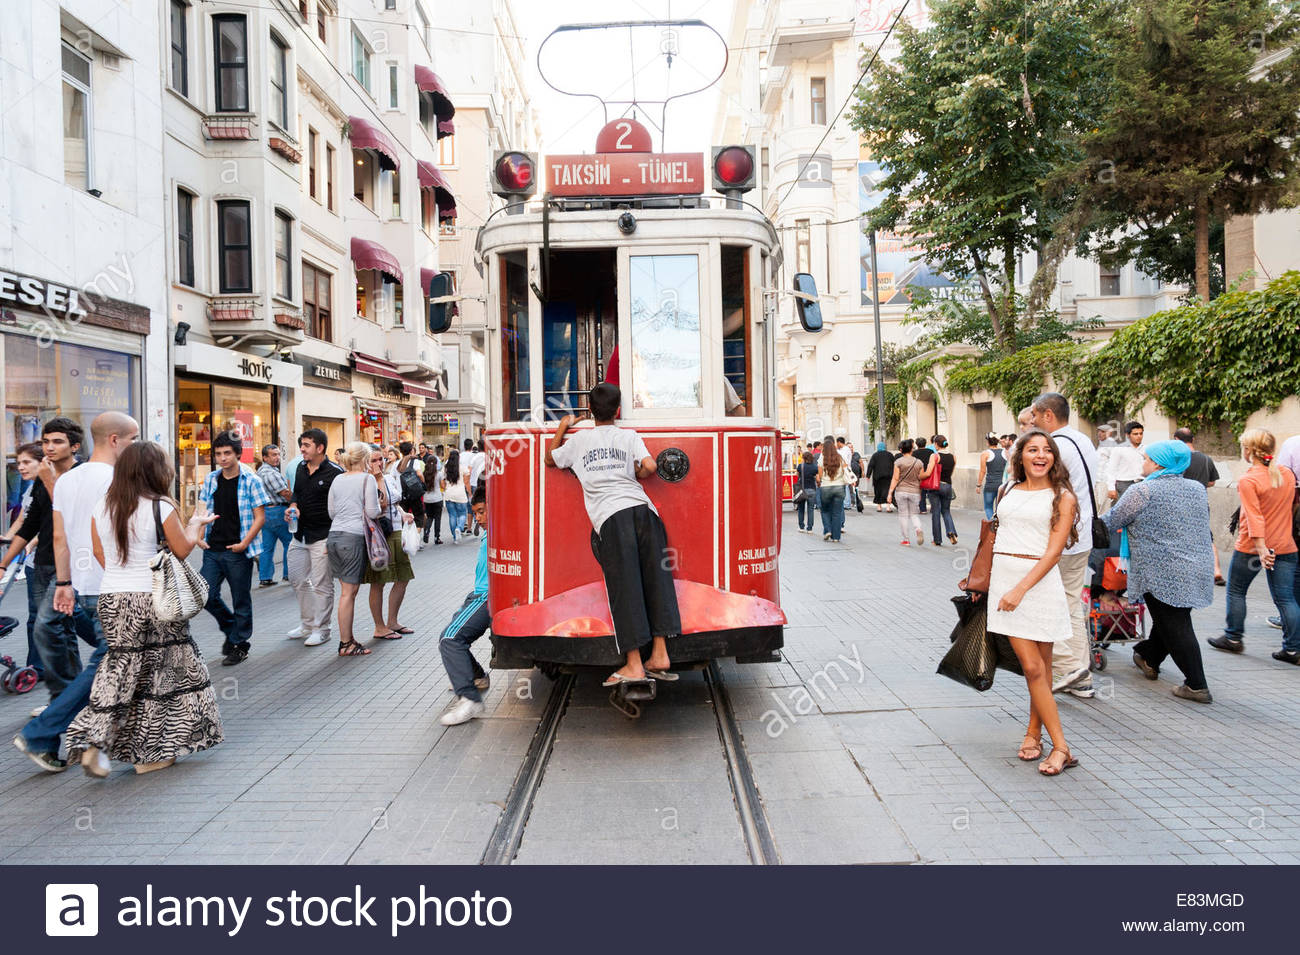 Child hitching a ride on back of an old red tram on Istiklal Cadessi, Beyoglu, Istanbul, Turkey - Stock Image